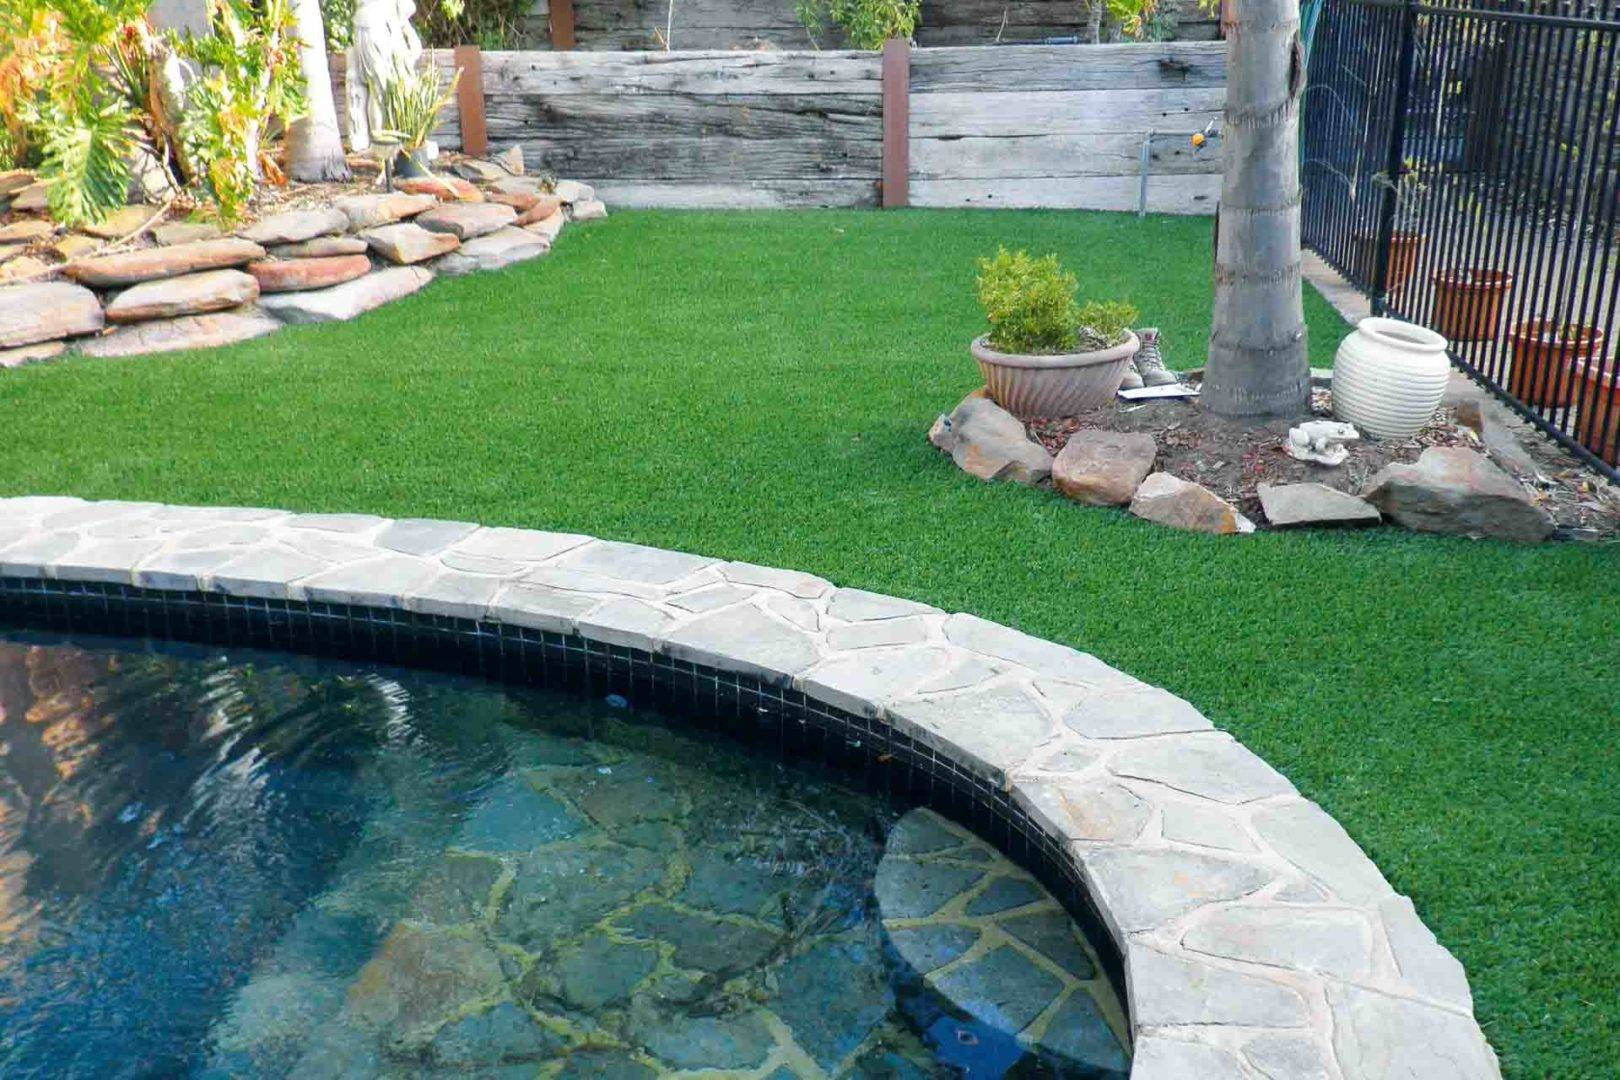 Save money in style with artificial grass - A backyard oasis, Australian Outdoor Living.